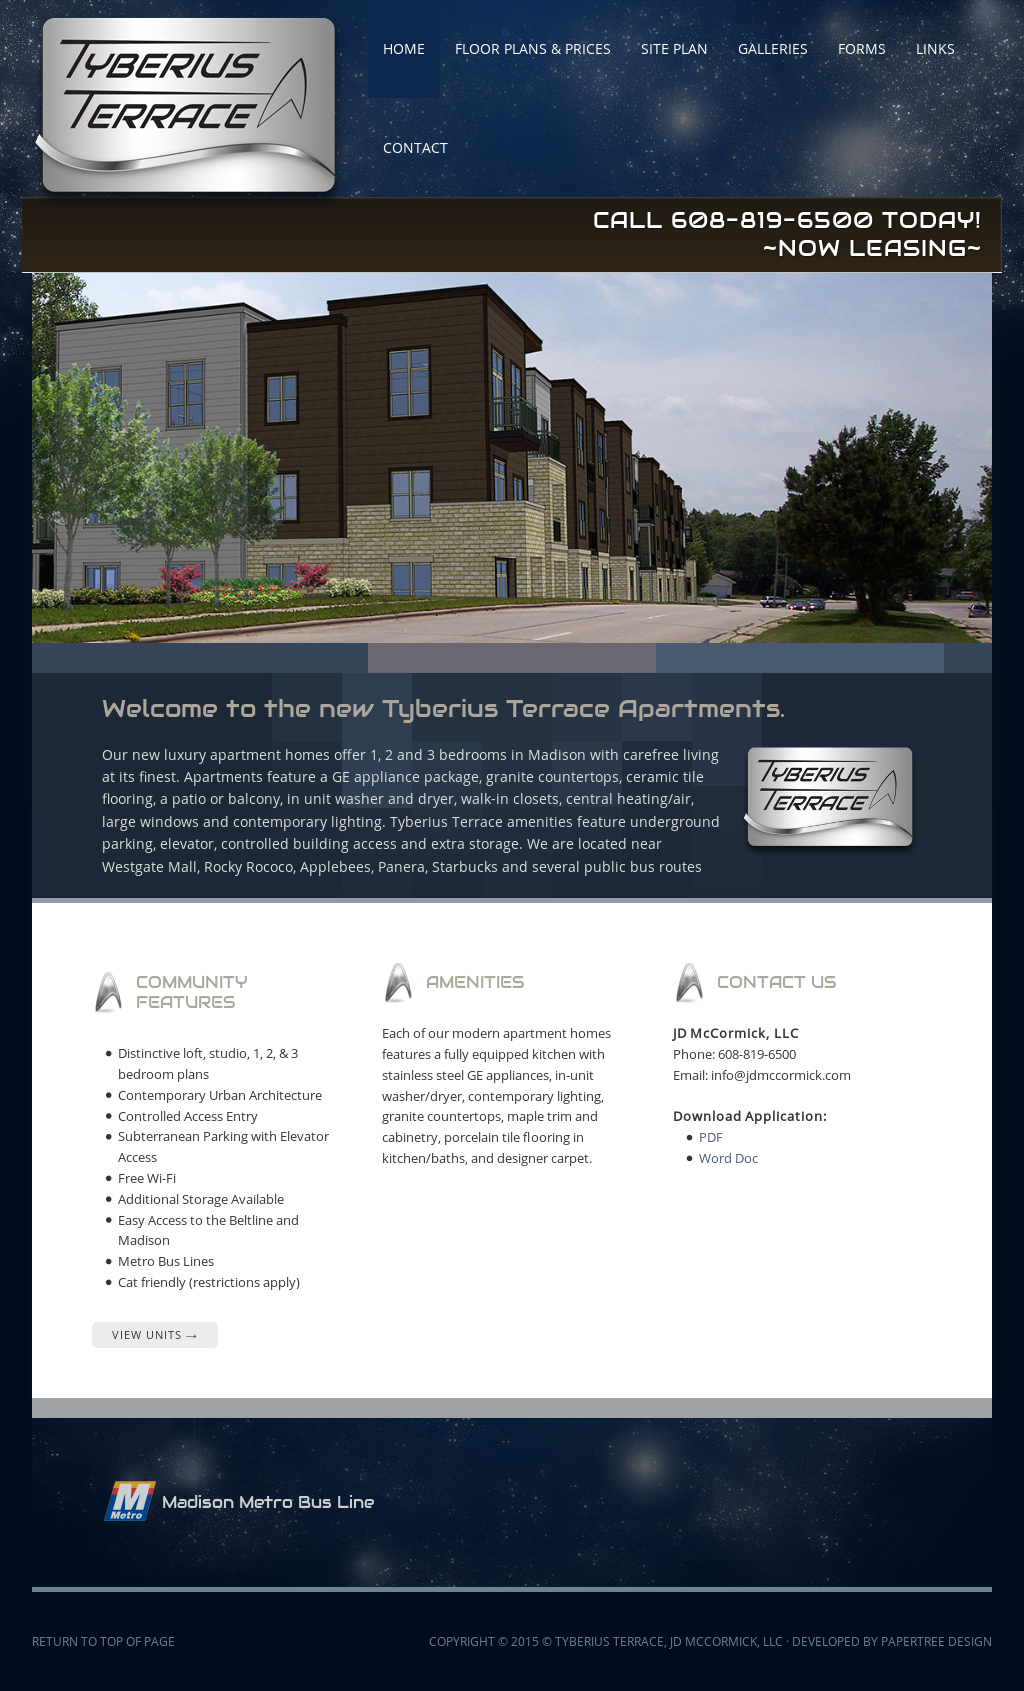 Tyberius Terrace, Jd Mccormick Competitors, Revenue and